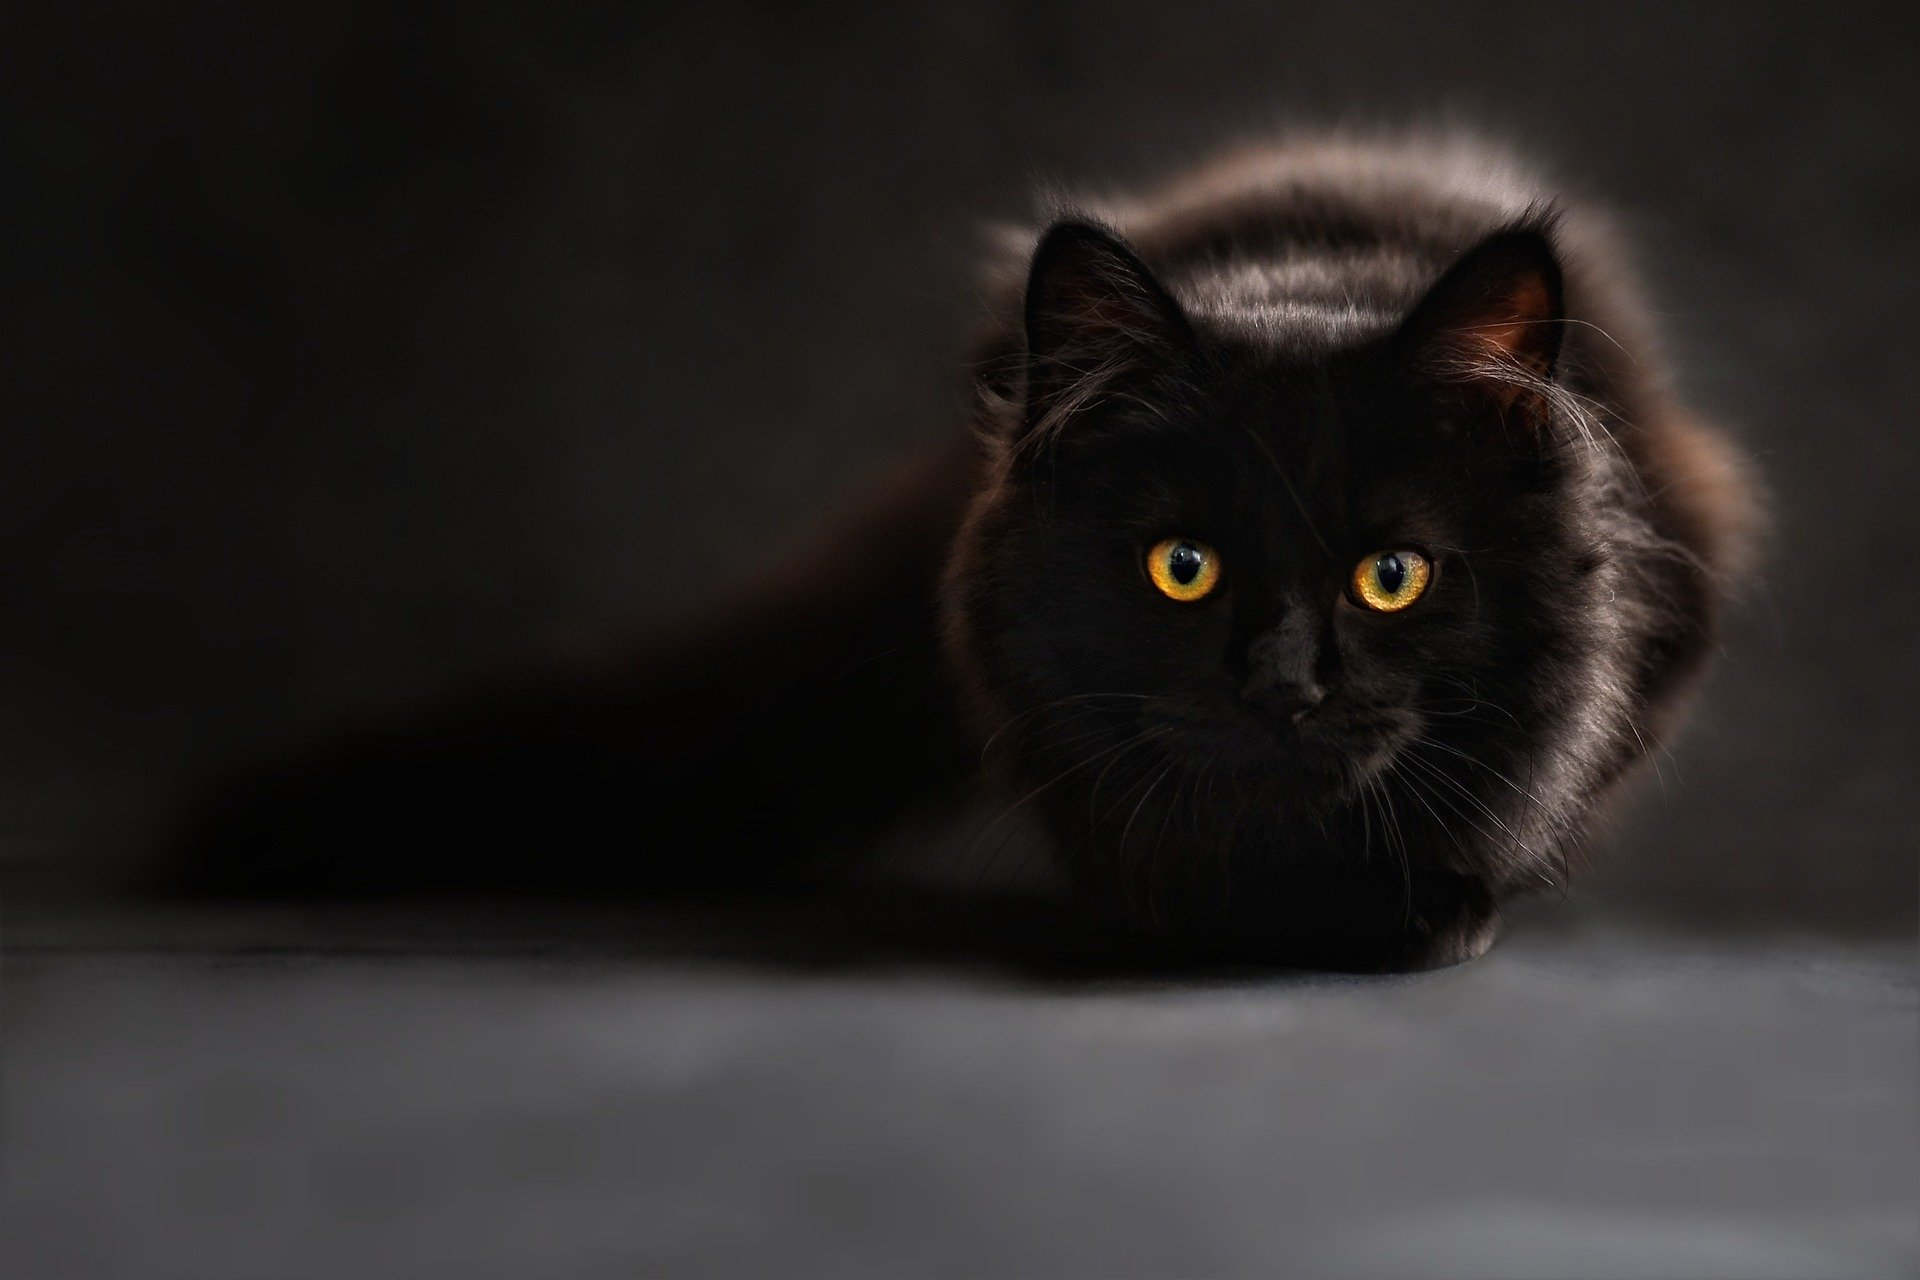 Black cat ready to pounce Claudia Wollesen Pixabay